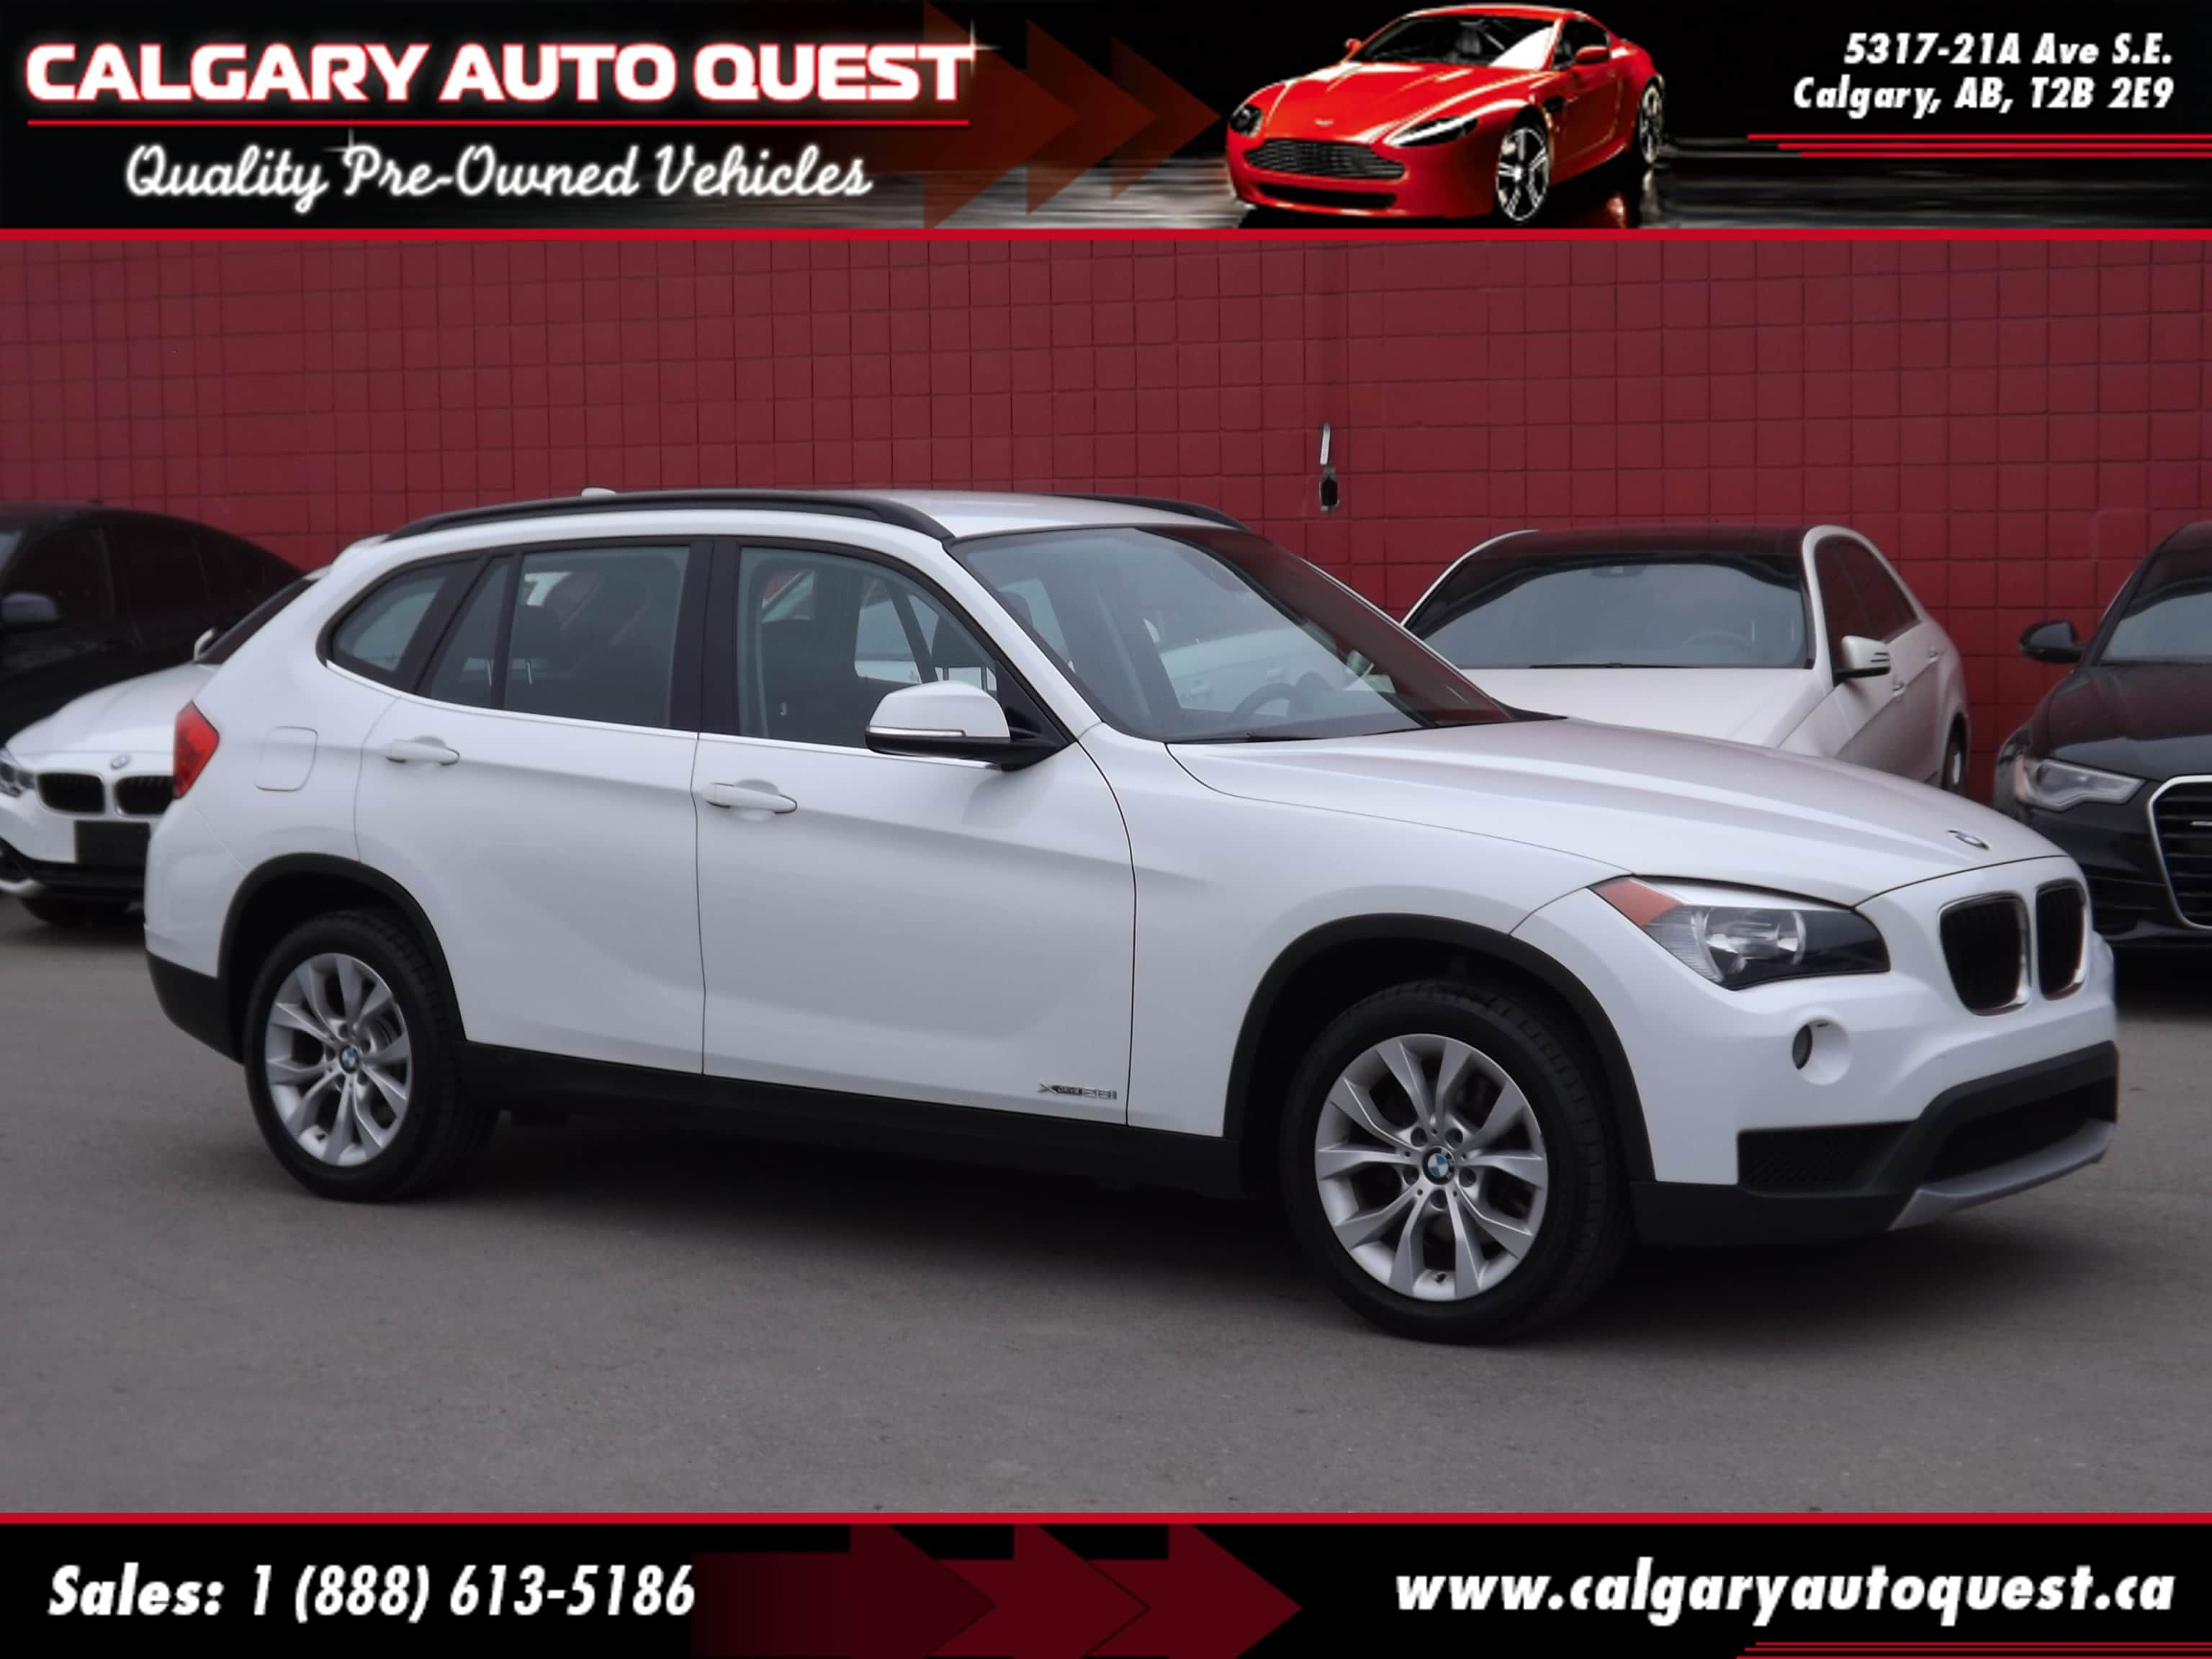 Cars For Sale Under 10000 Calgary Lovely Used 2014 Bmw X1 For Sale Cars For Sale Bmw Lovely Car